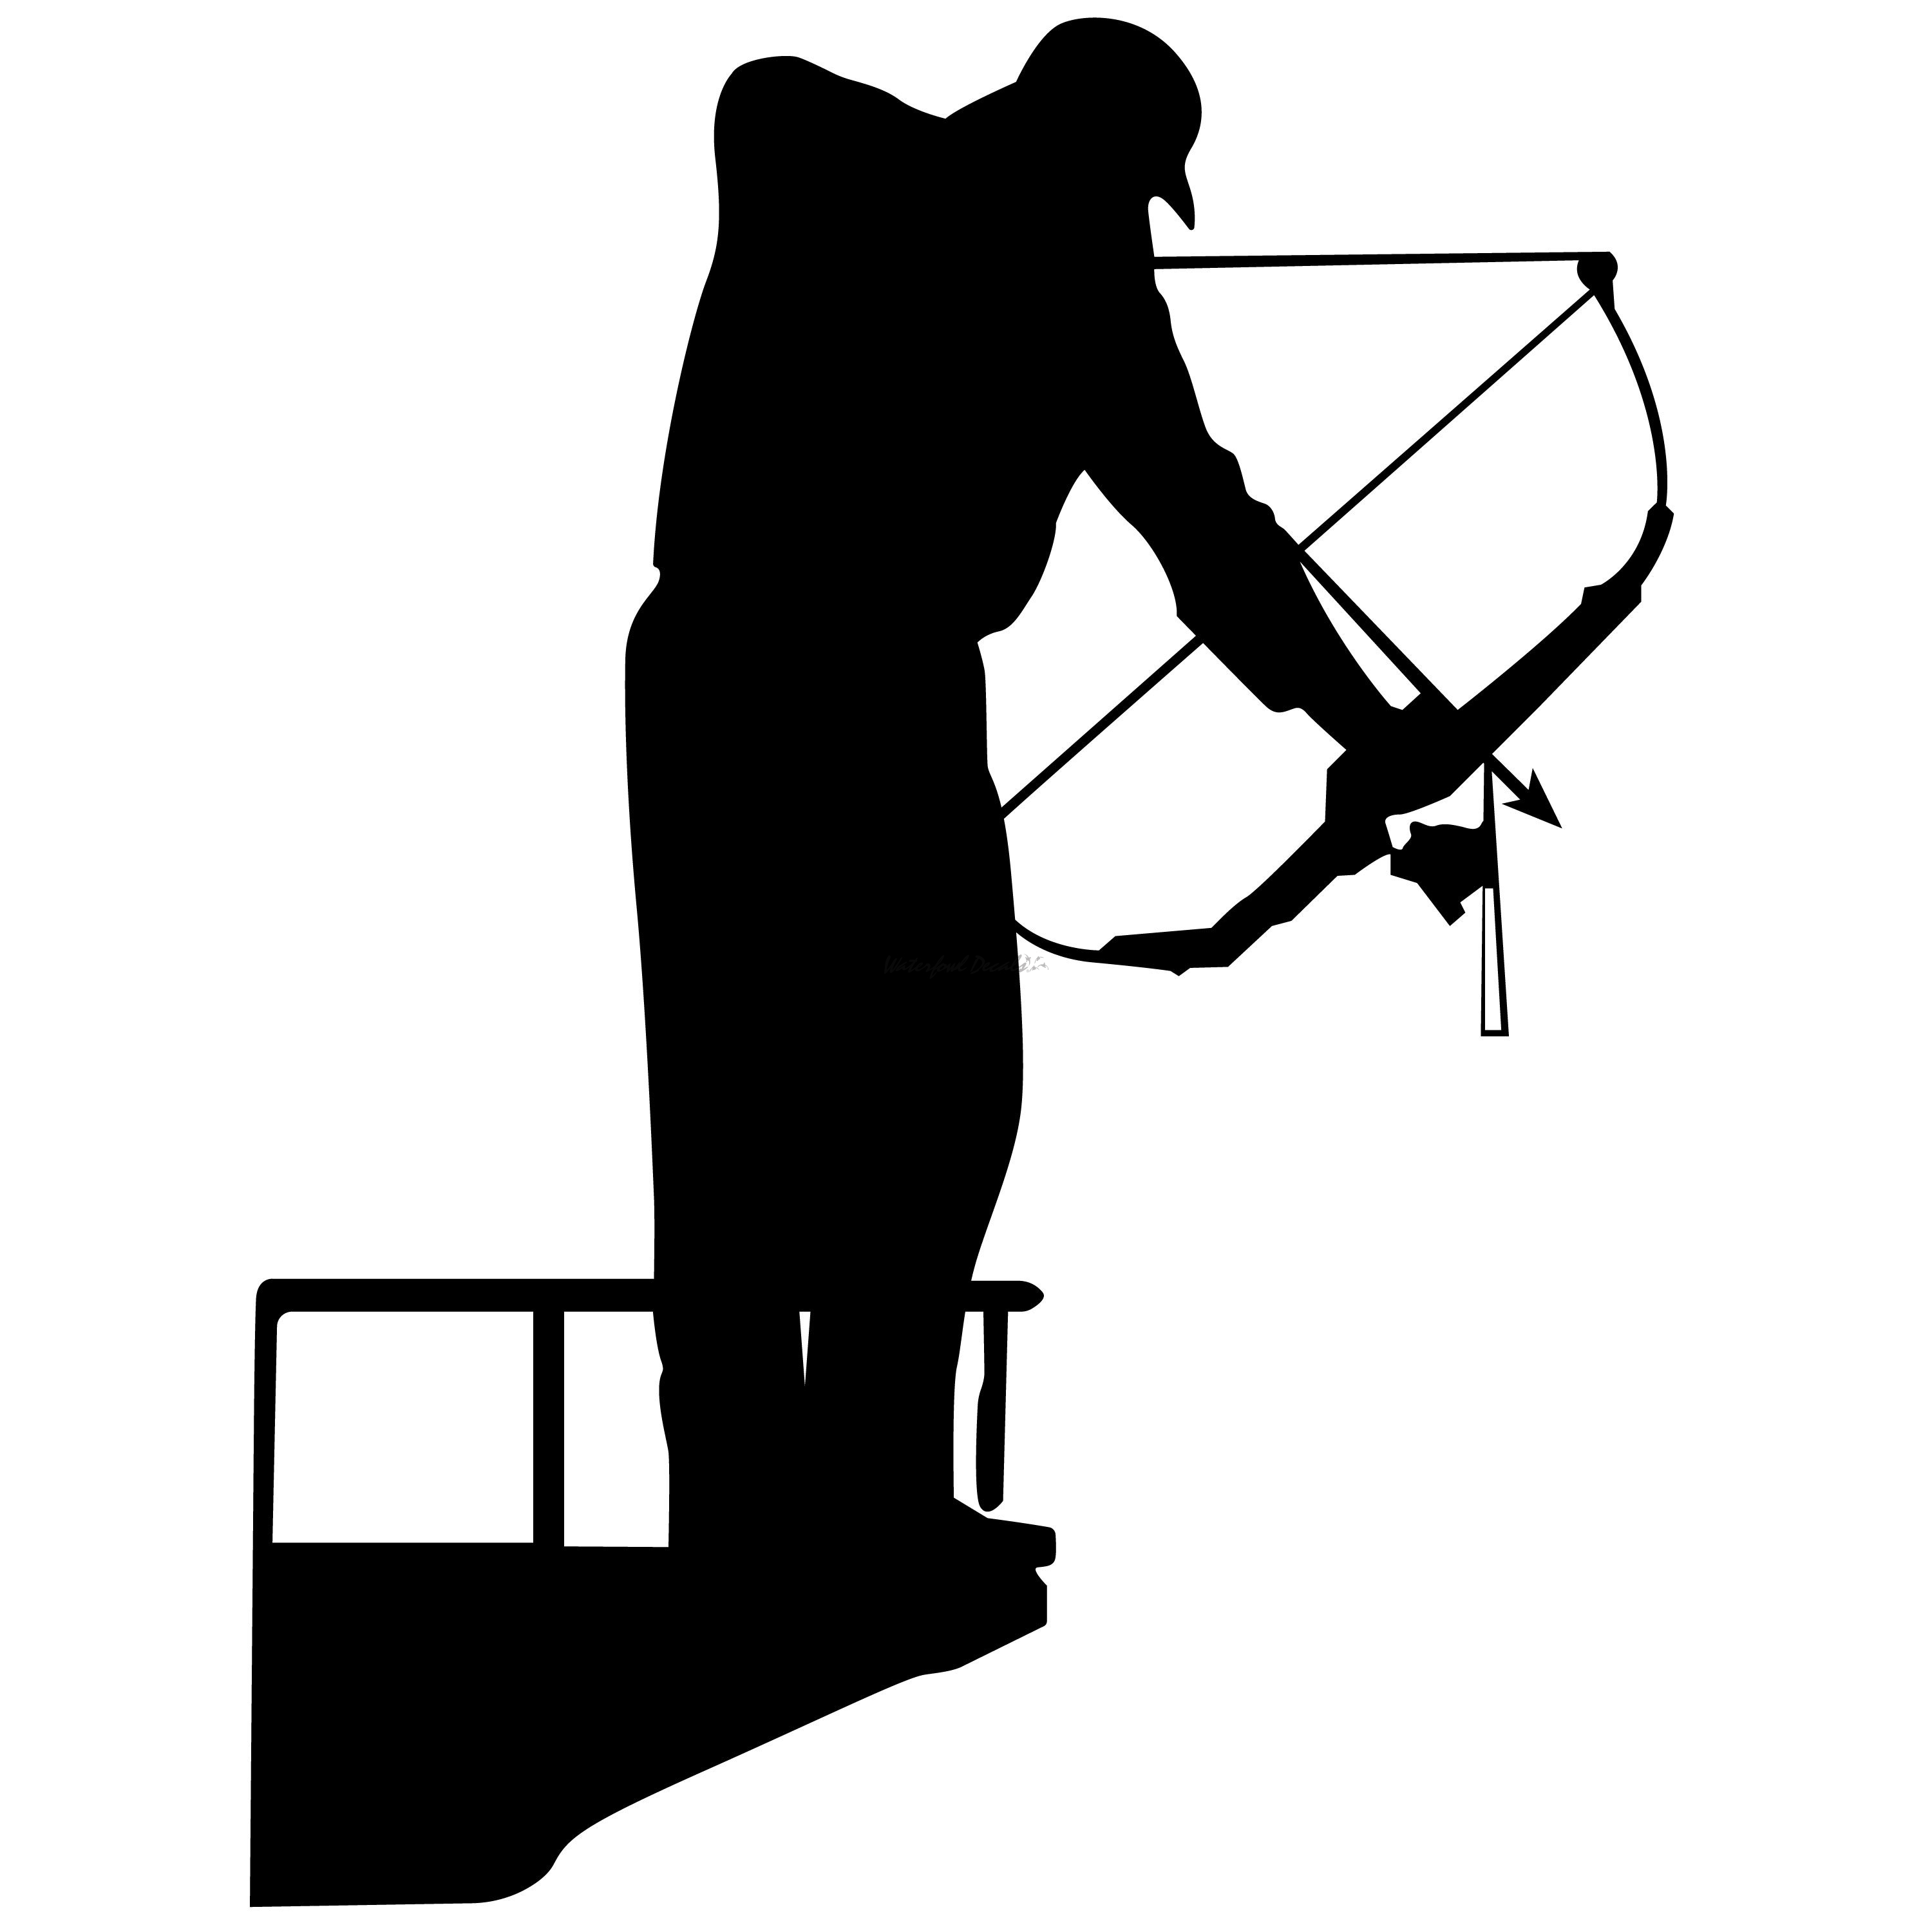 Bow free download best. Archery clipart hunting